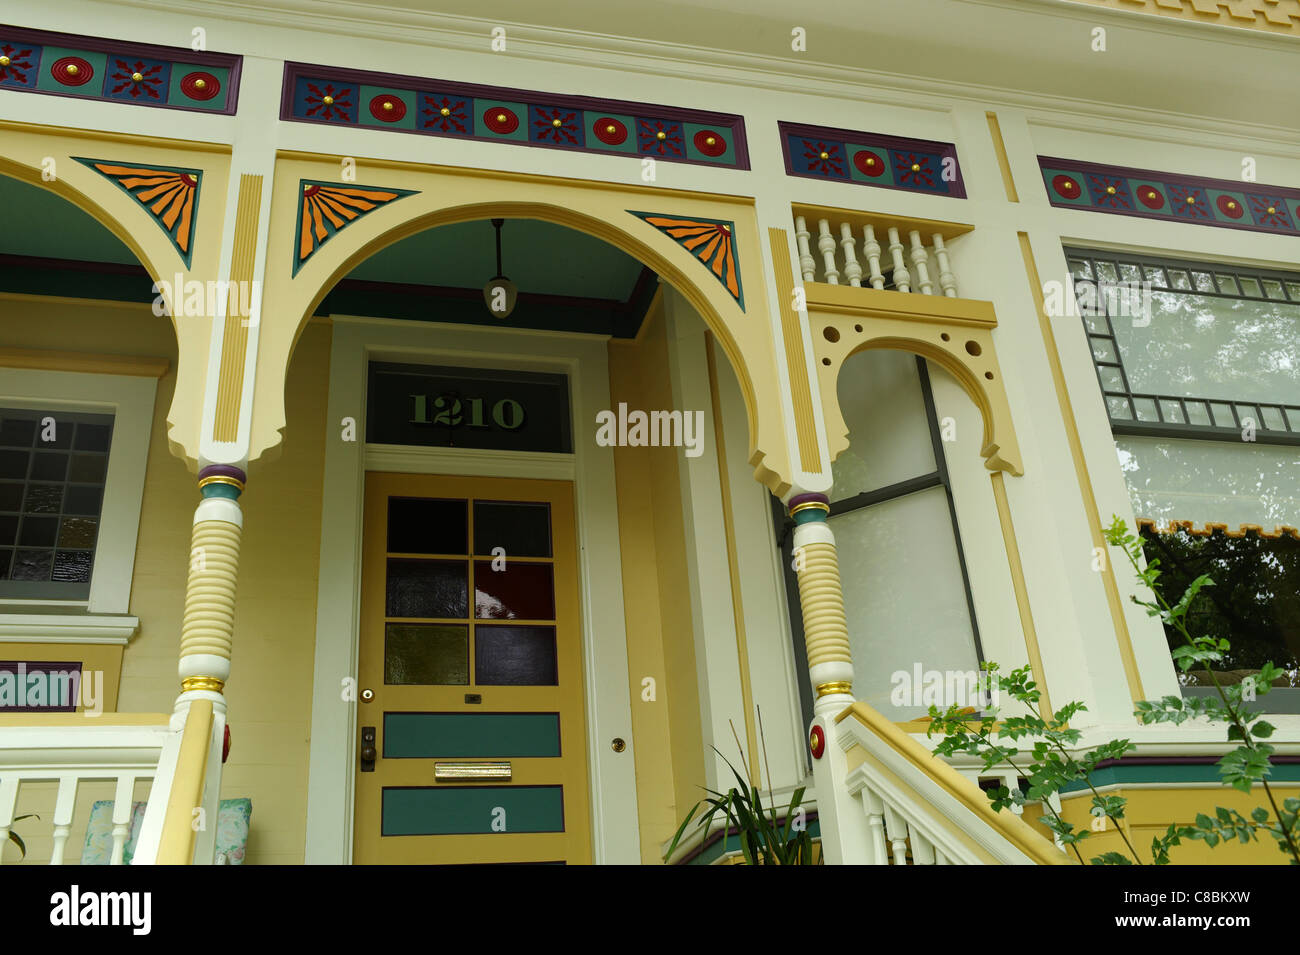 Victorian home architecture 19th century Queen Victoria Anne Georgian Regency Edwardian arts and crafts movement - Stock Image